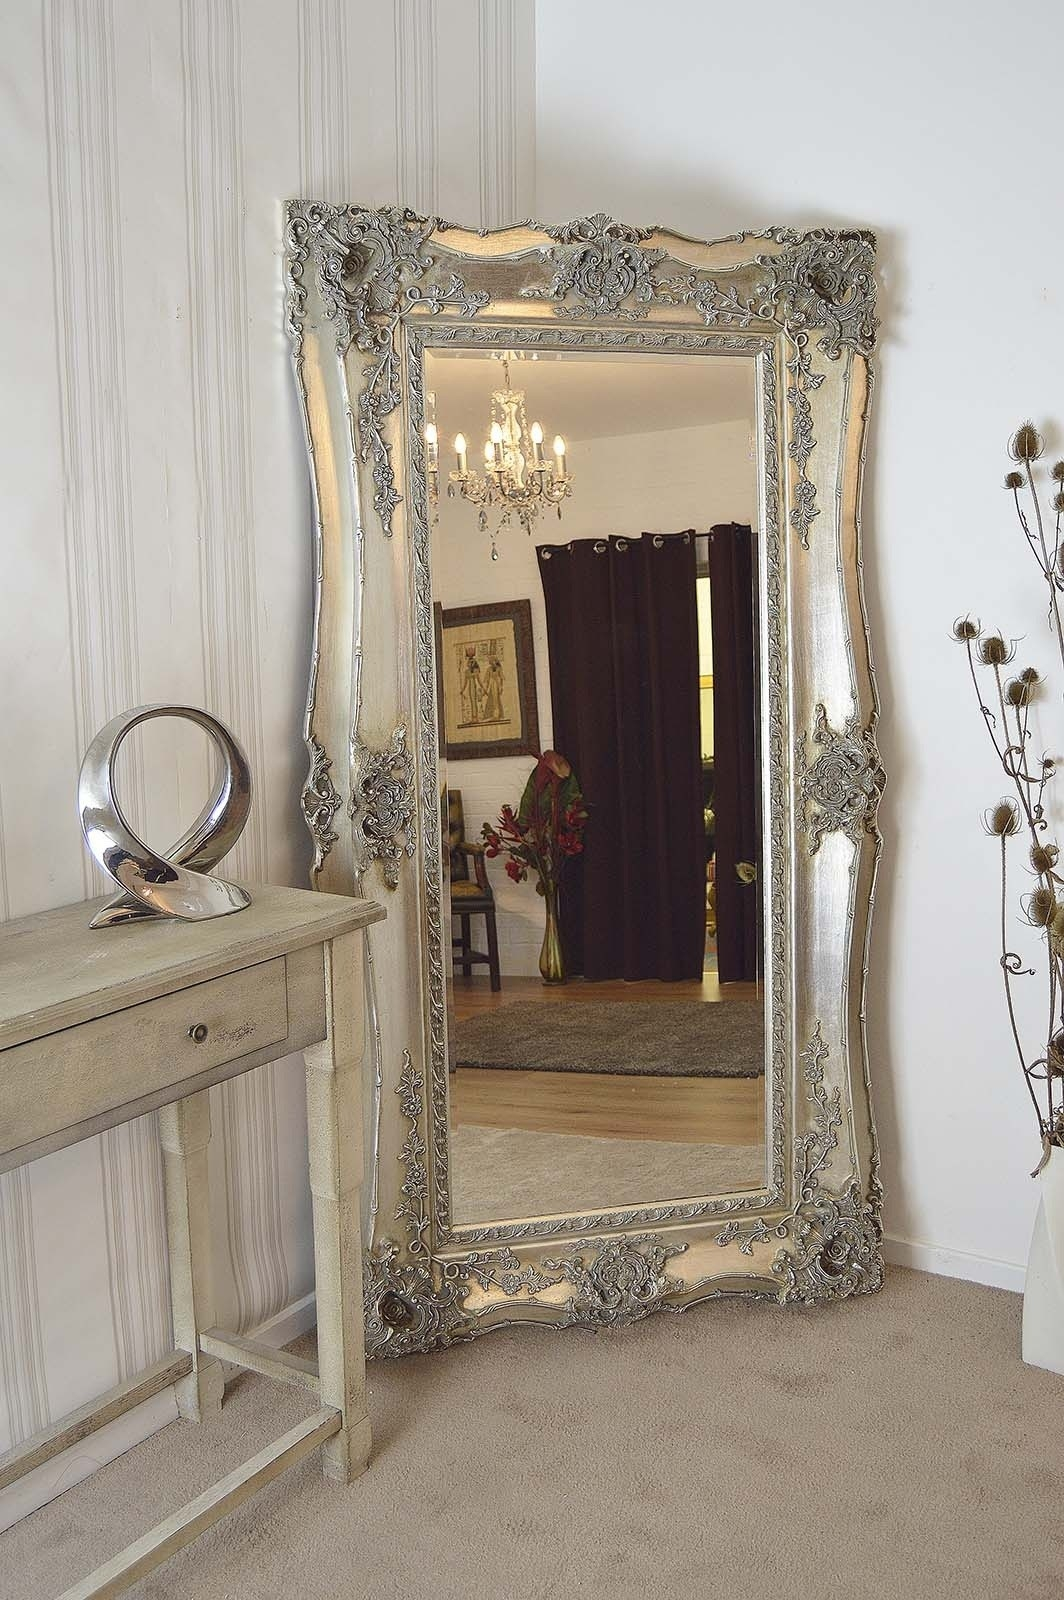 Bedroom Furniture Large Gold Mirror Free Standing Mirror Wooden In Large Antique Wall Mirror (Image 3 of 15)